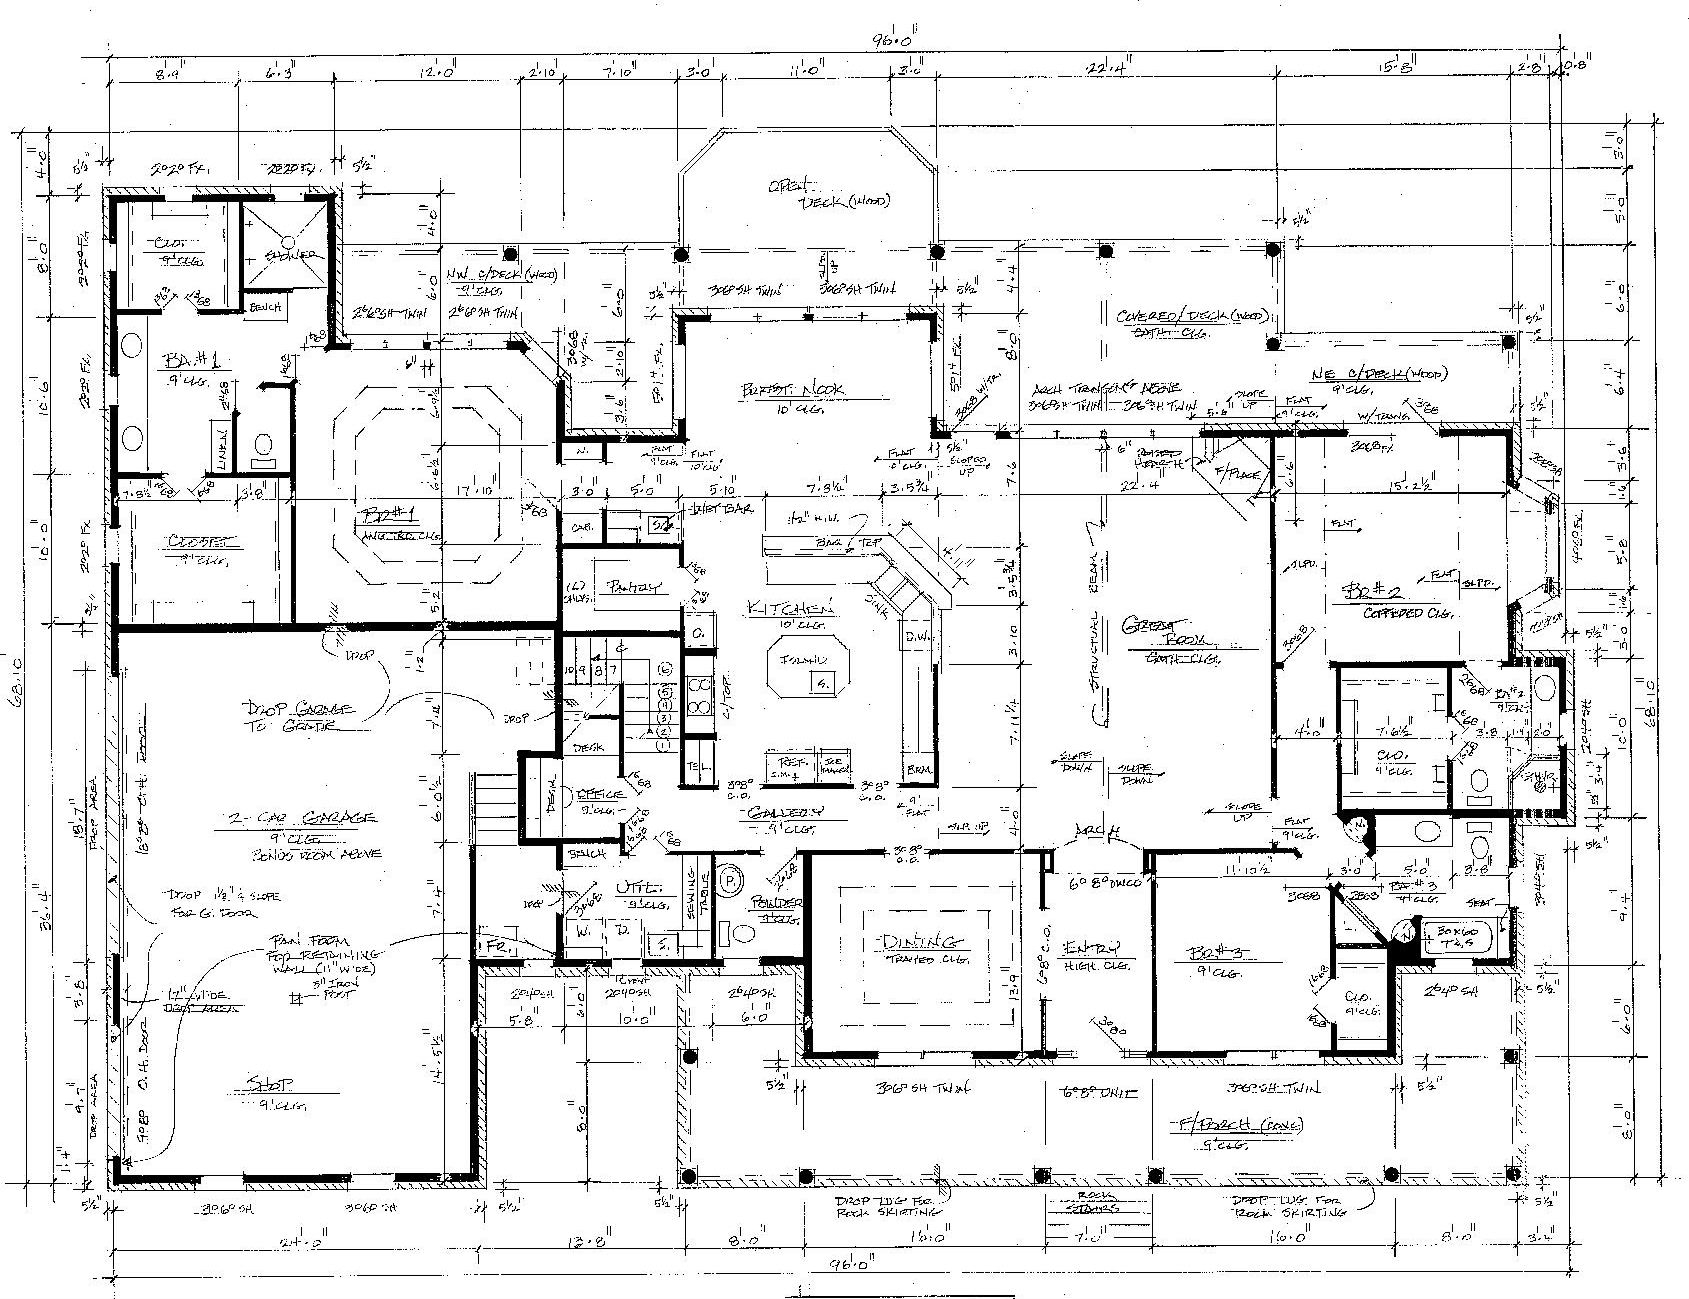 House inside drawing at free for for How to get blueprints of my house